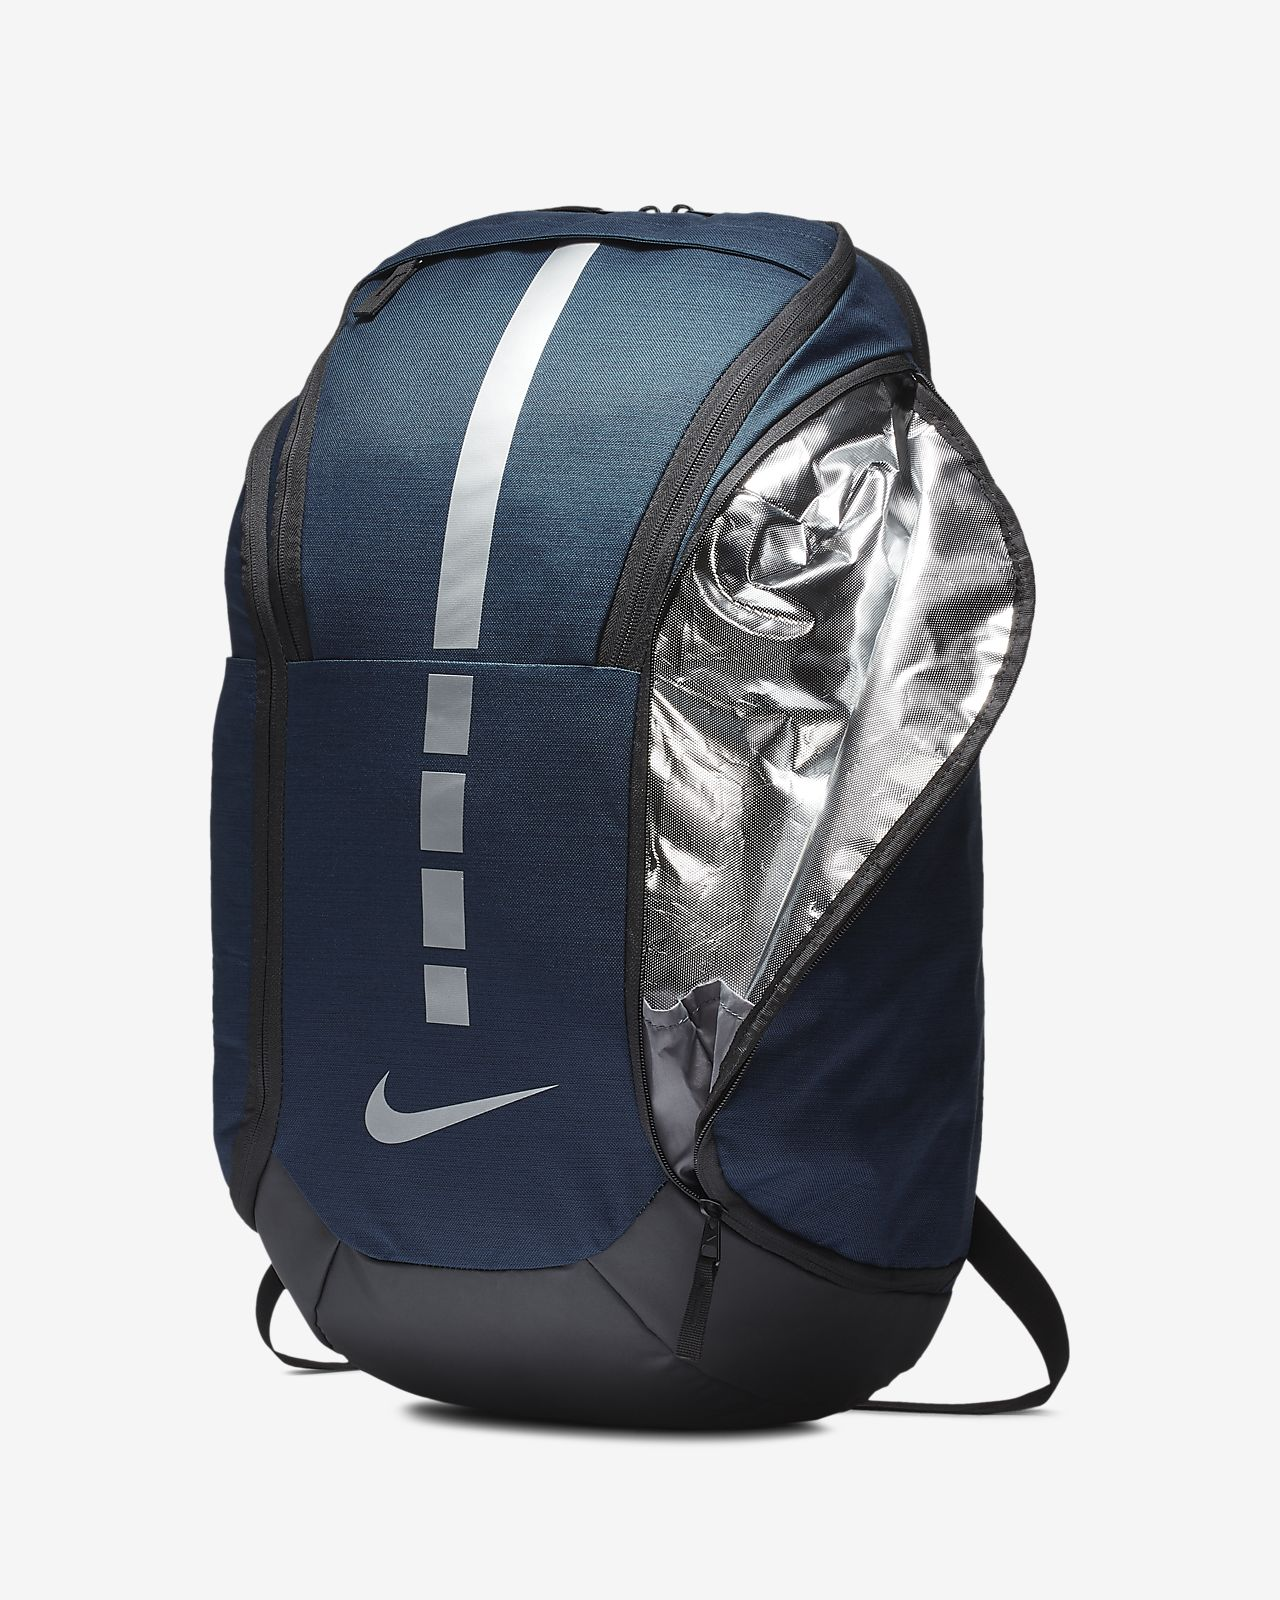 6768f722c4 Nike Hoops Elite Pro Basketball Backpack. Nike.com IN